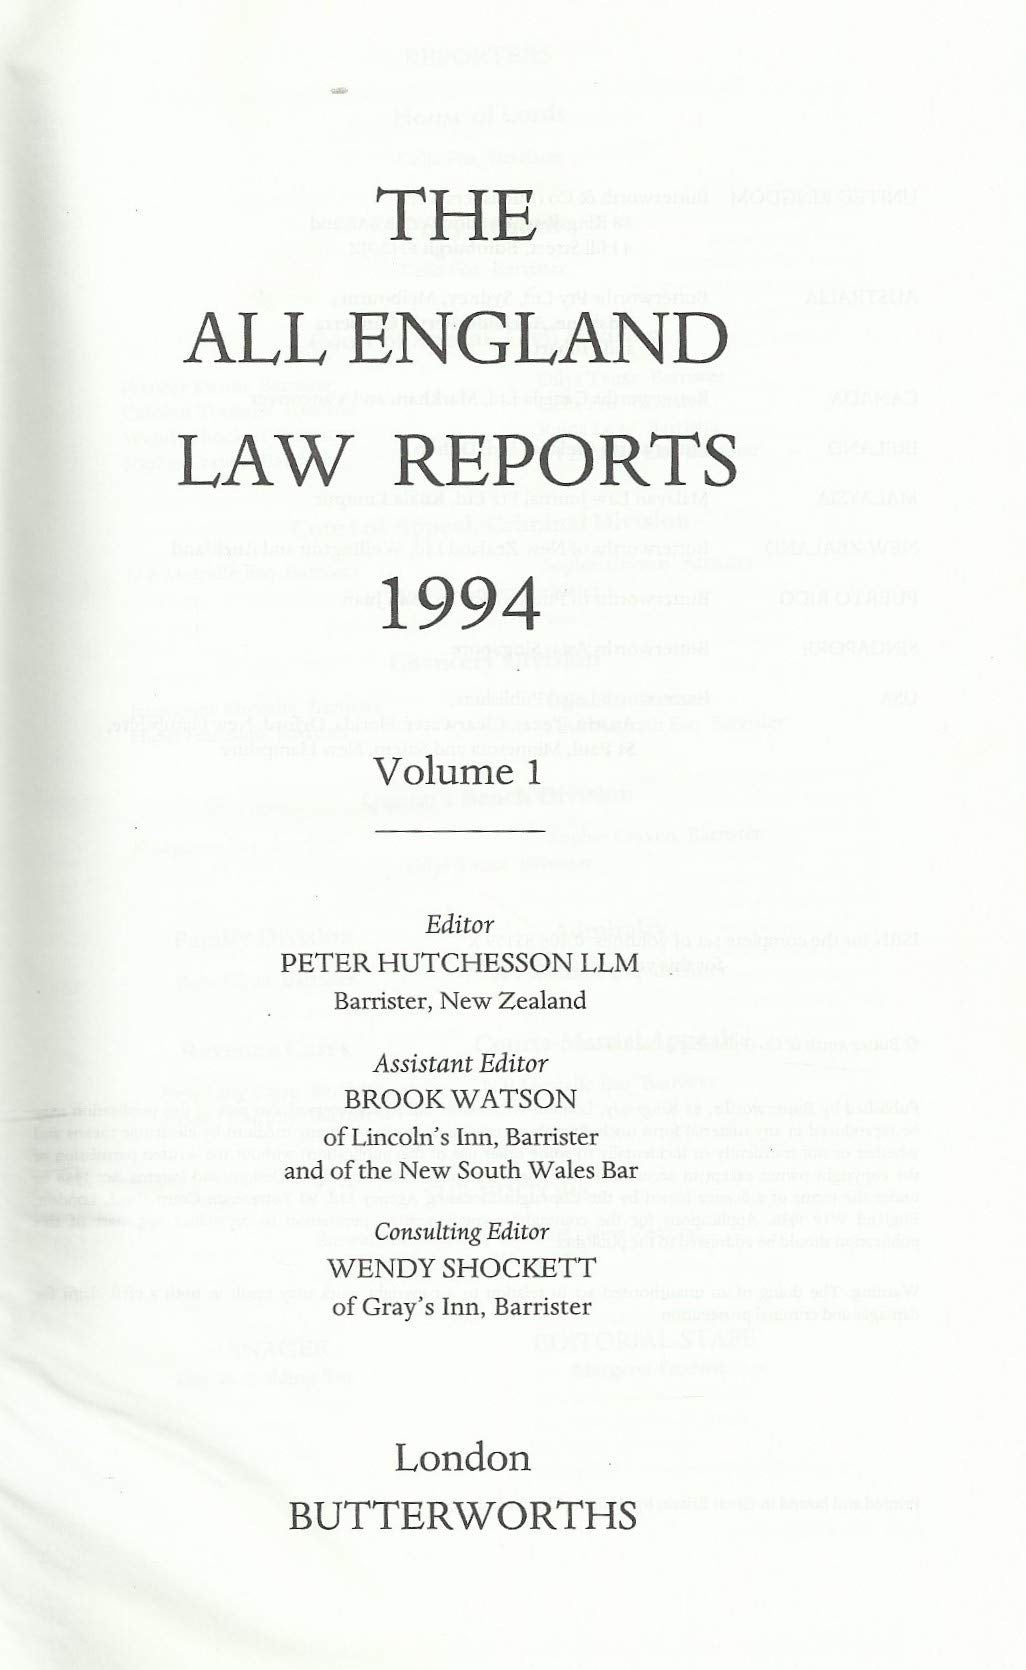 The All England Law Reports 1994, Volume 1